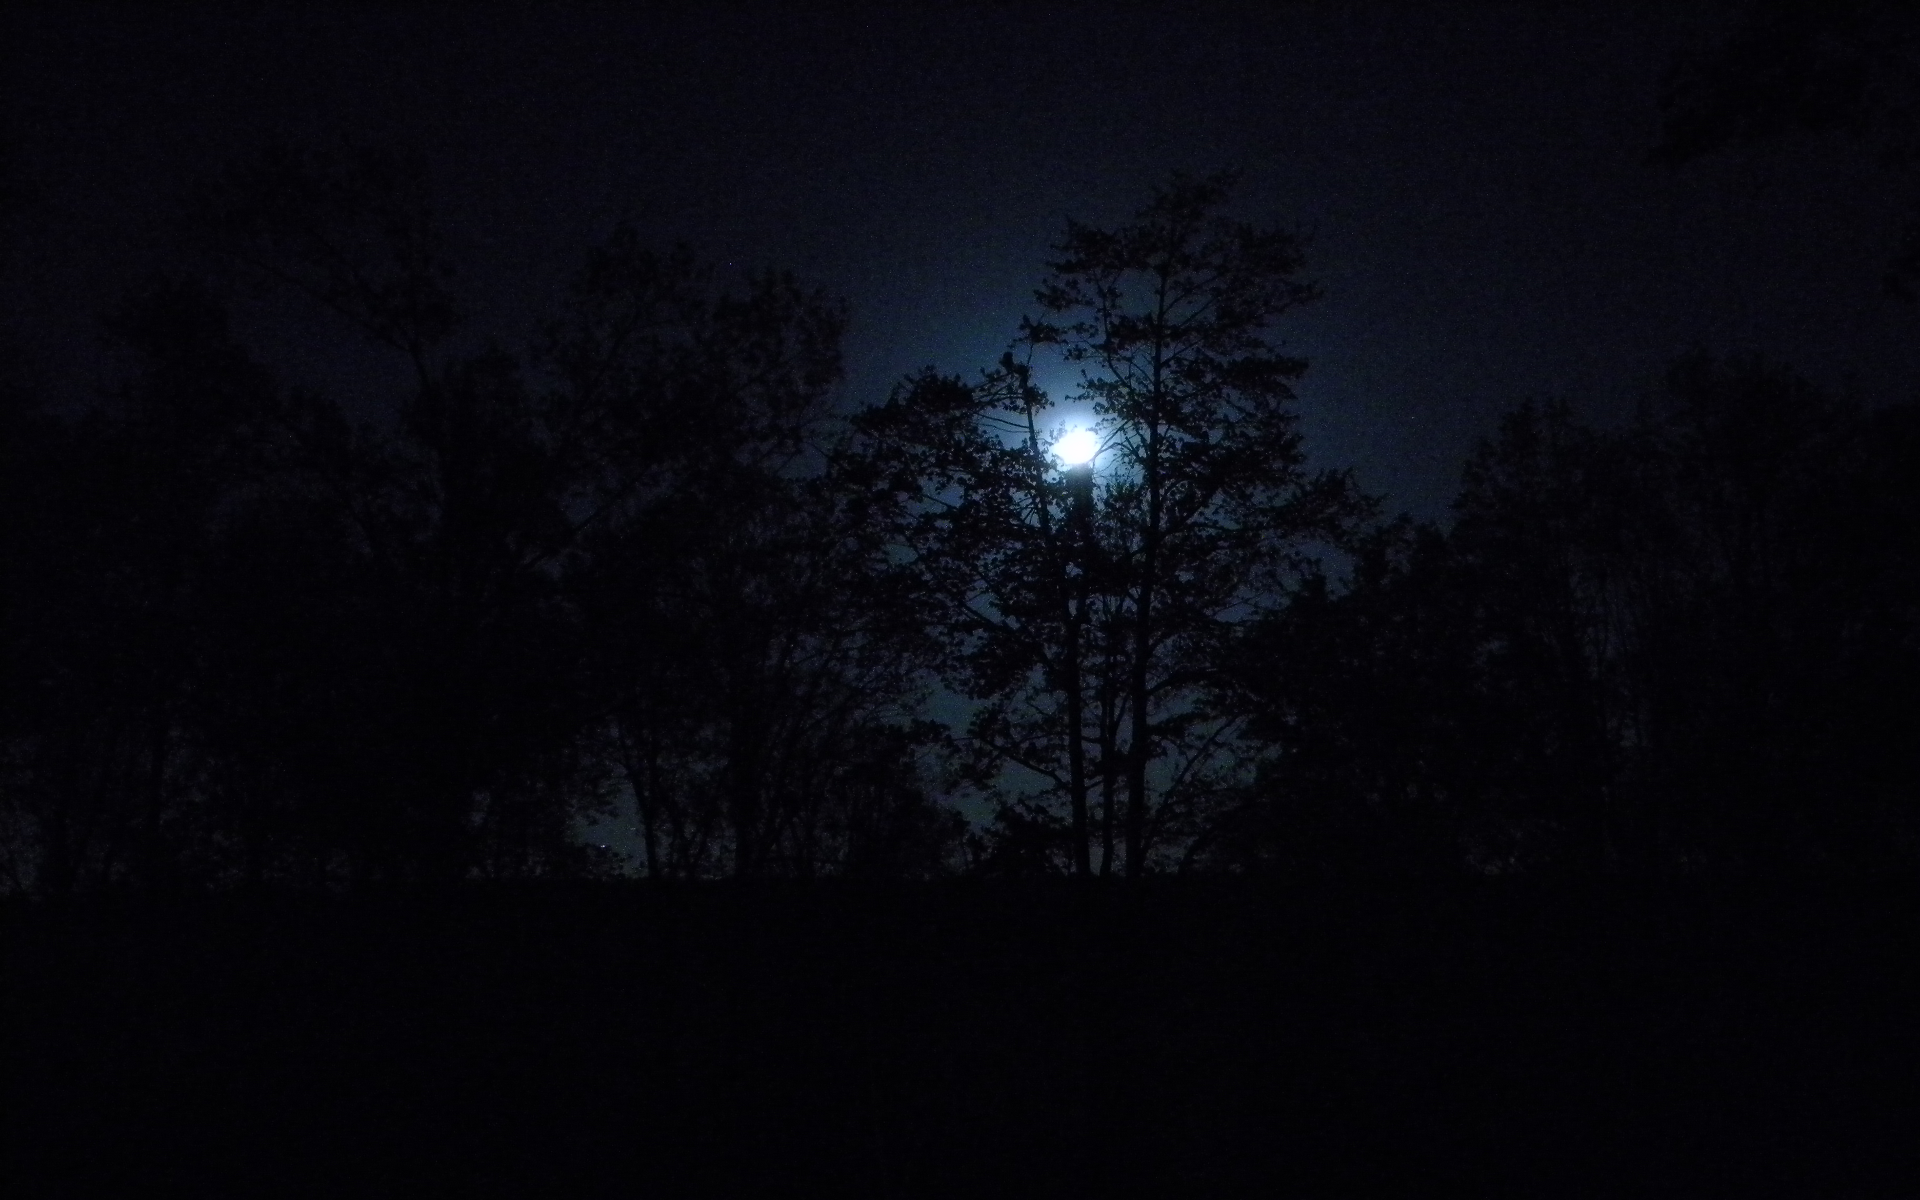 Nature trees dark night forest moon wallpaper backgroundForest At Night With Moon